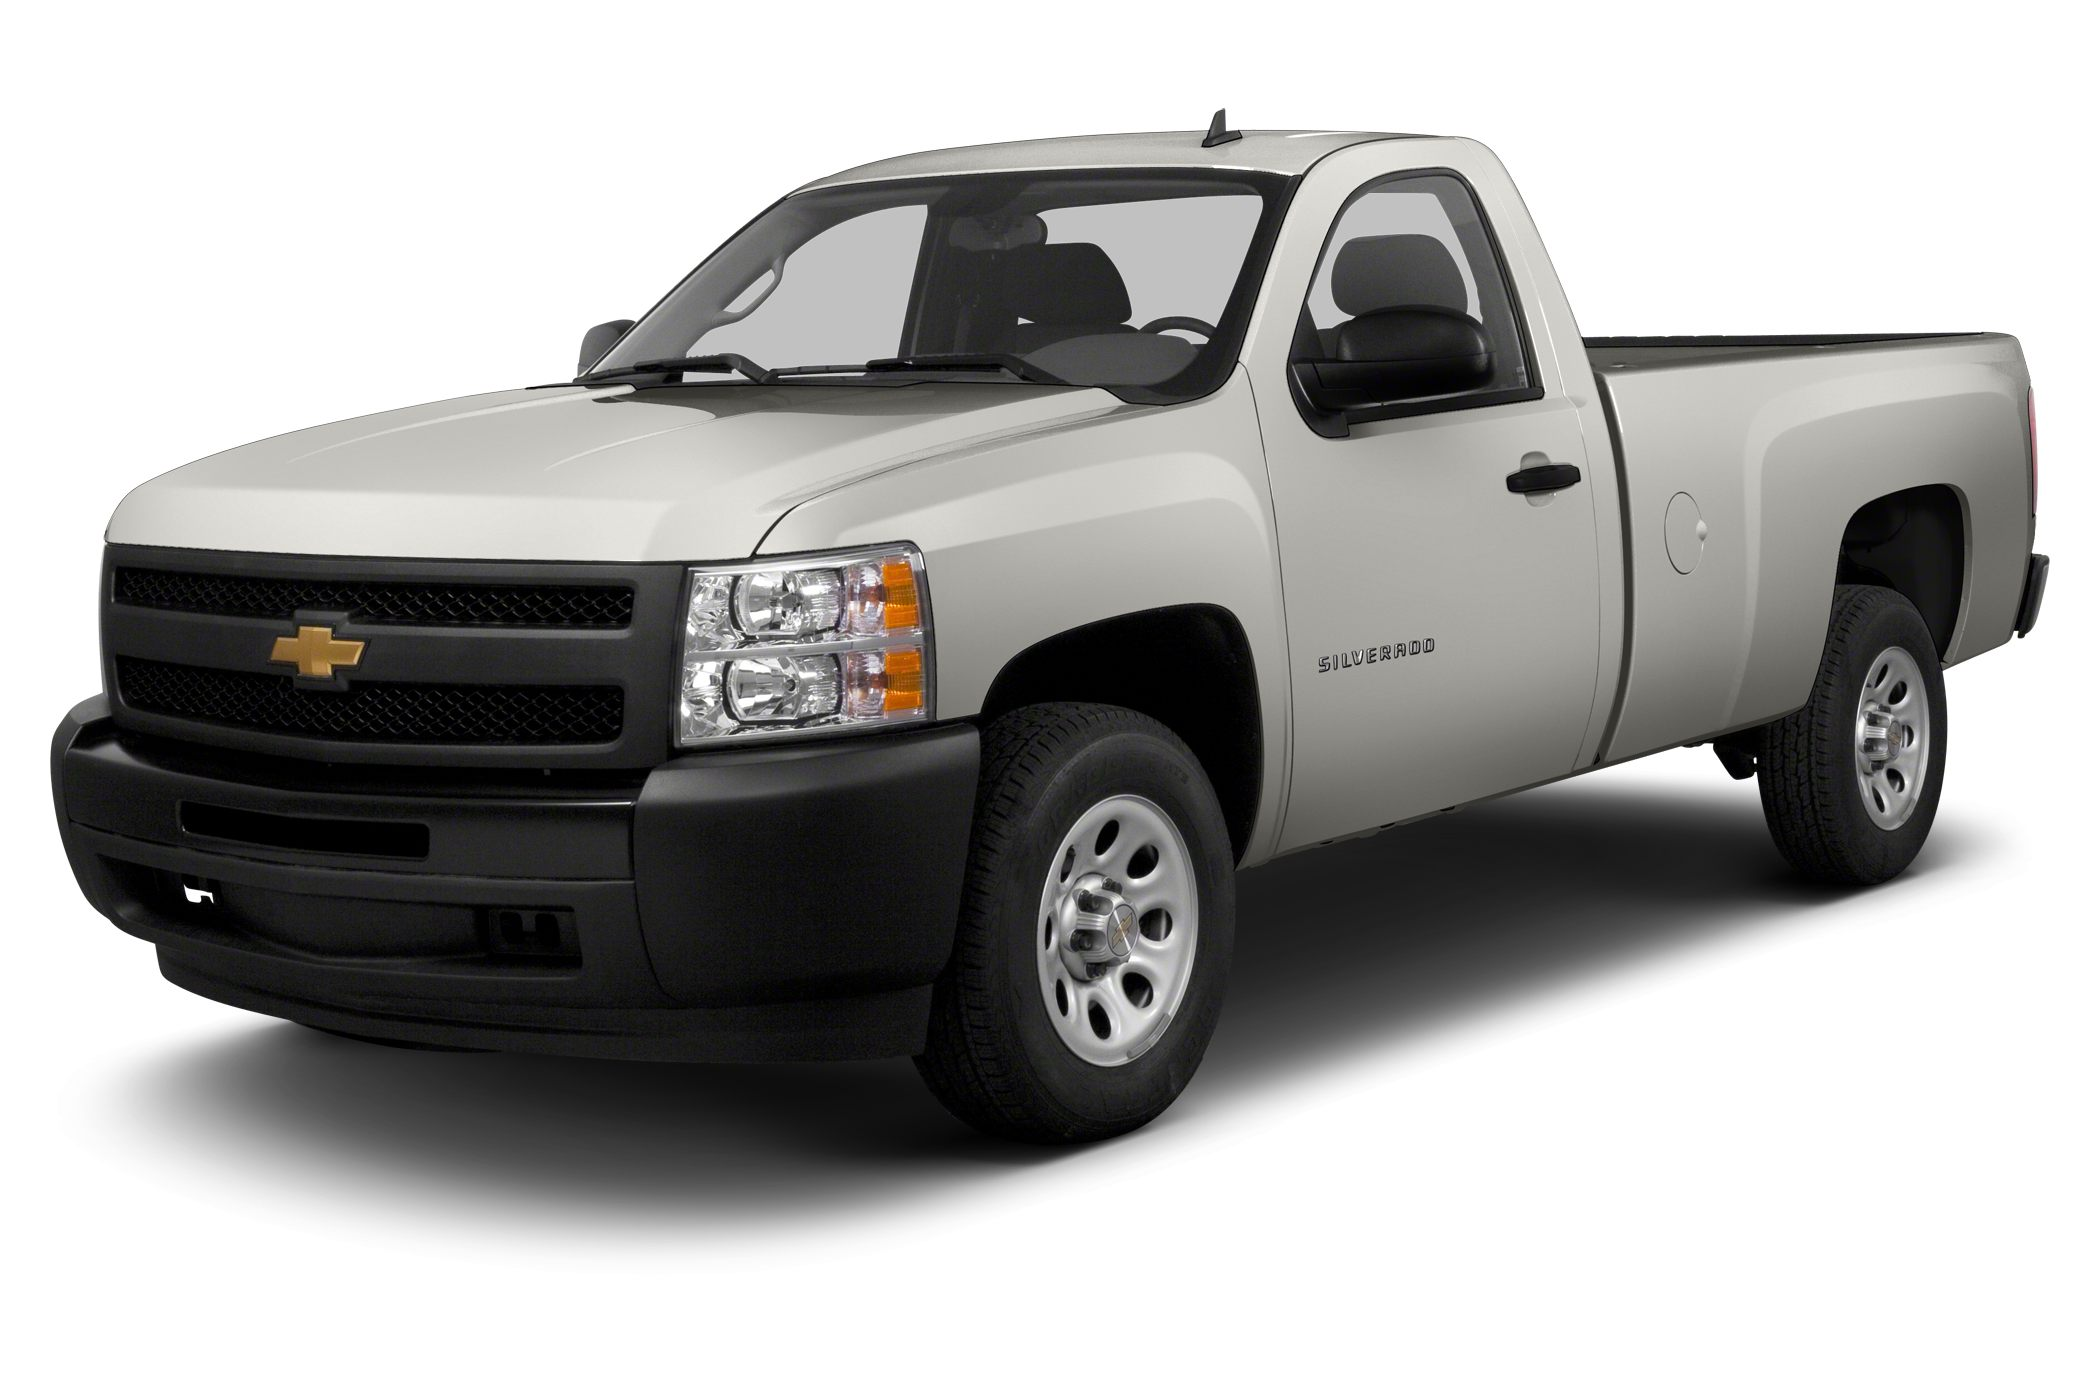 2013 Chevrolet Silverado 1500 WT ONE OWNER 110 PT INSPECTION 60 DAY UNLIMITED MILEAGE WARRANTY